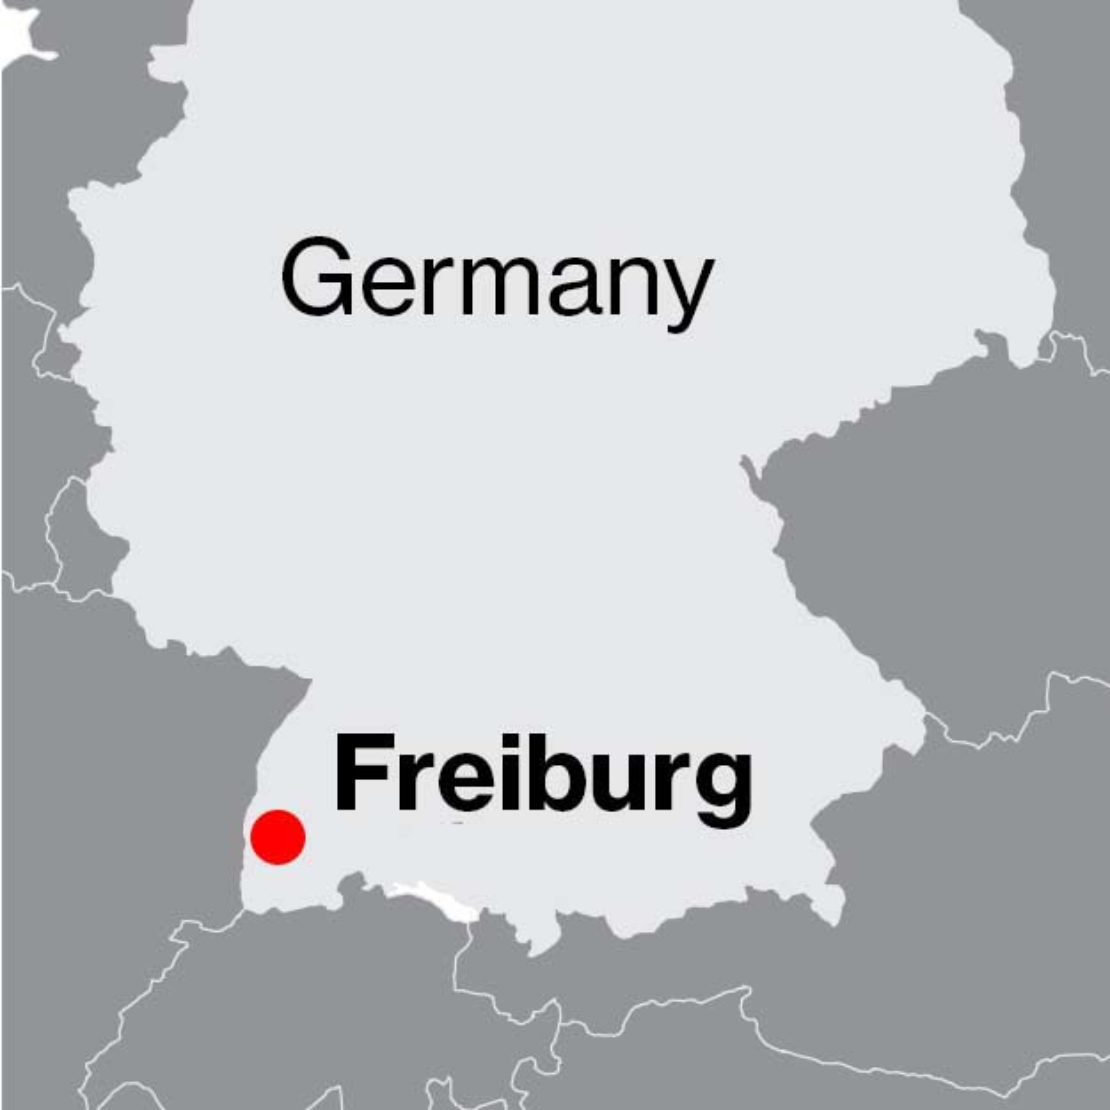 Map of Freiburg's location in the south-west of Germany